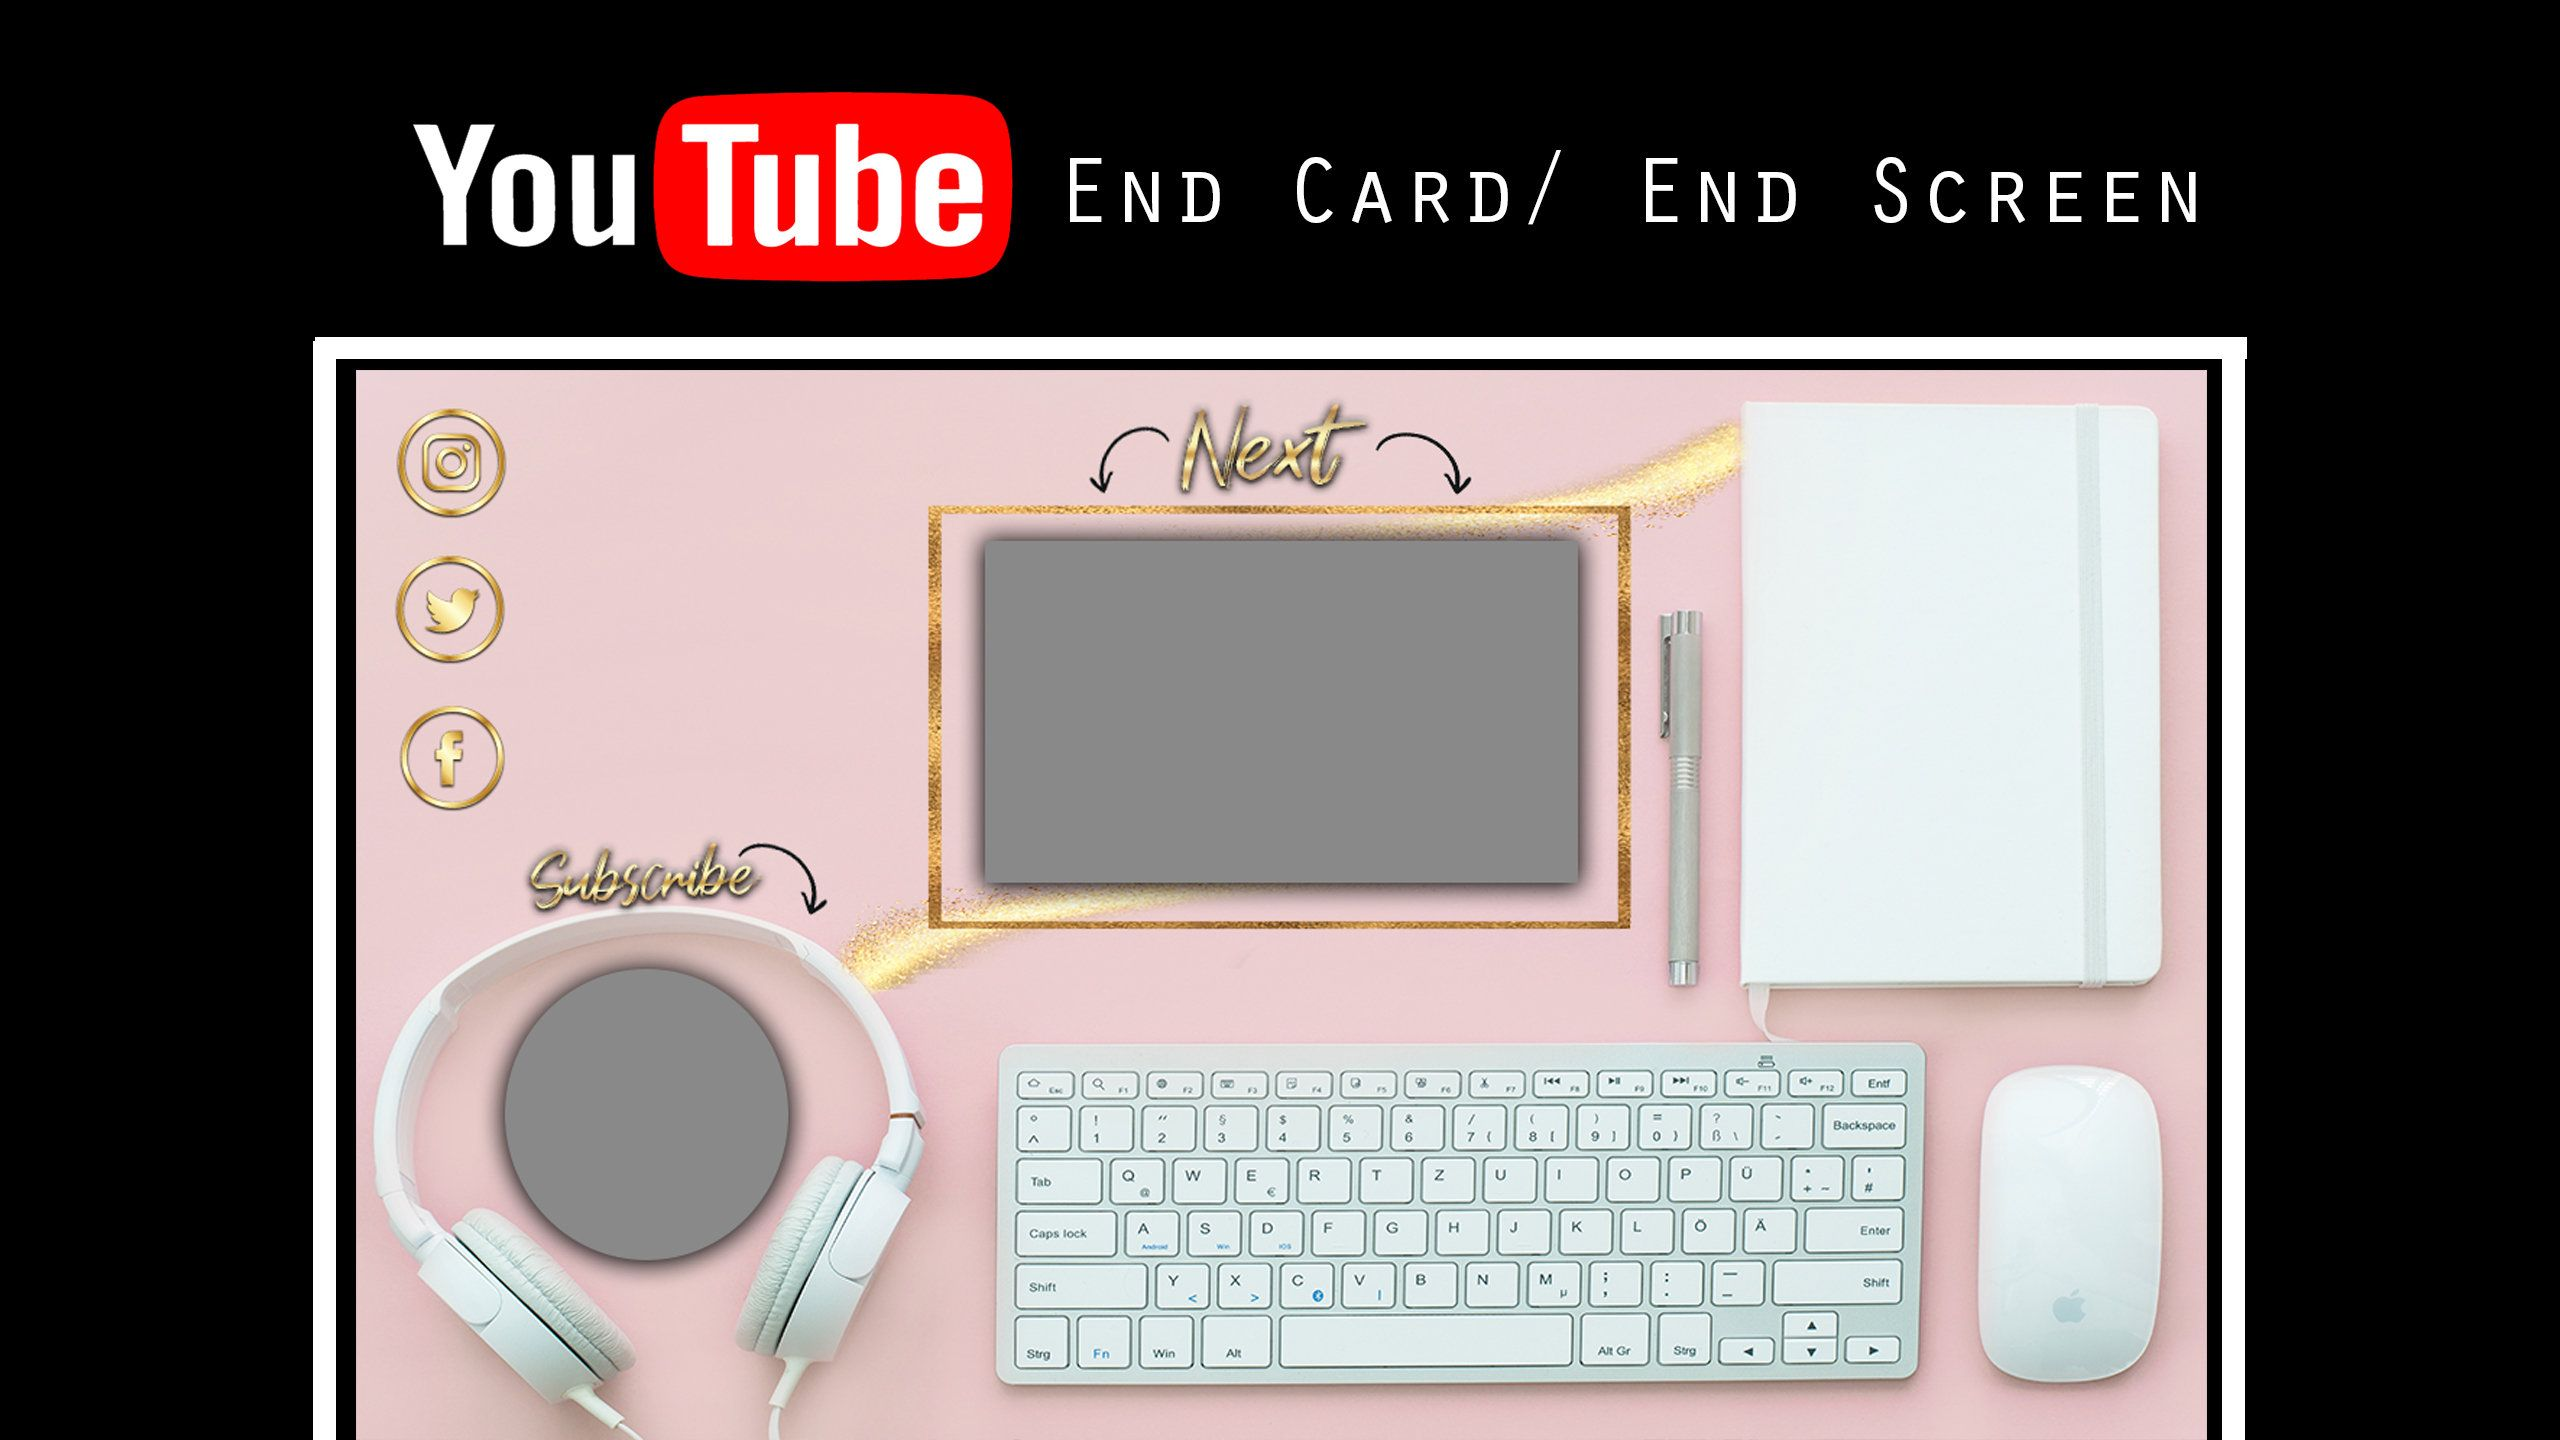 Youtube End Screen / YouTube End Card Video Outro Card